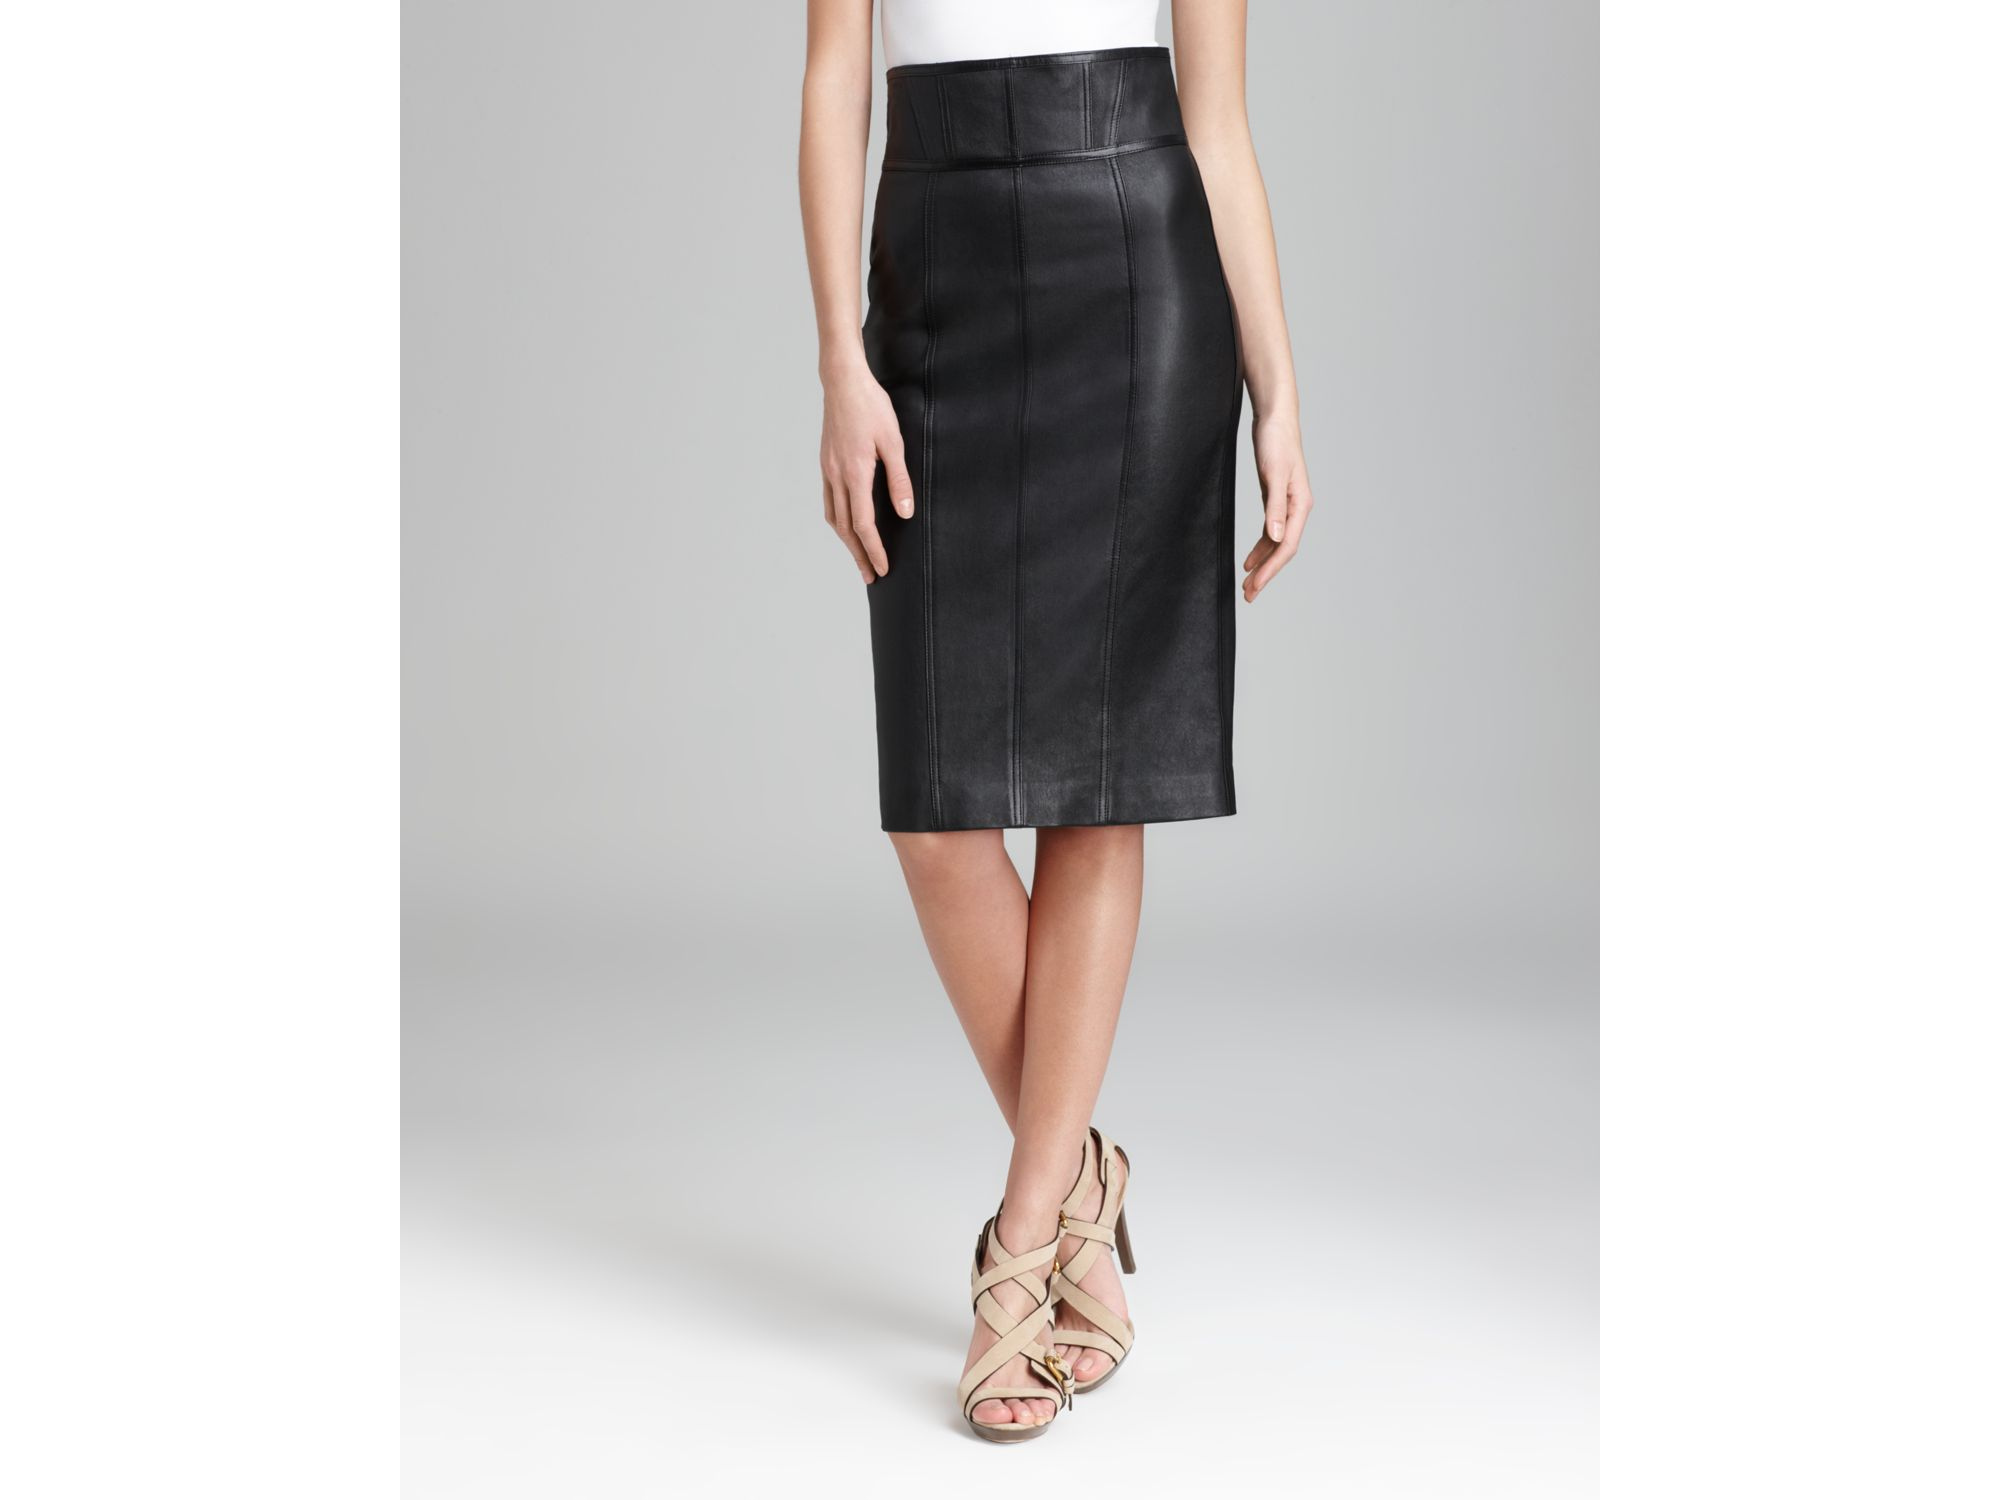 Burberry London Skirt Leather High Waist Pencil in Black | Lyst